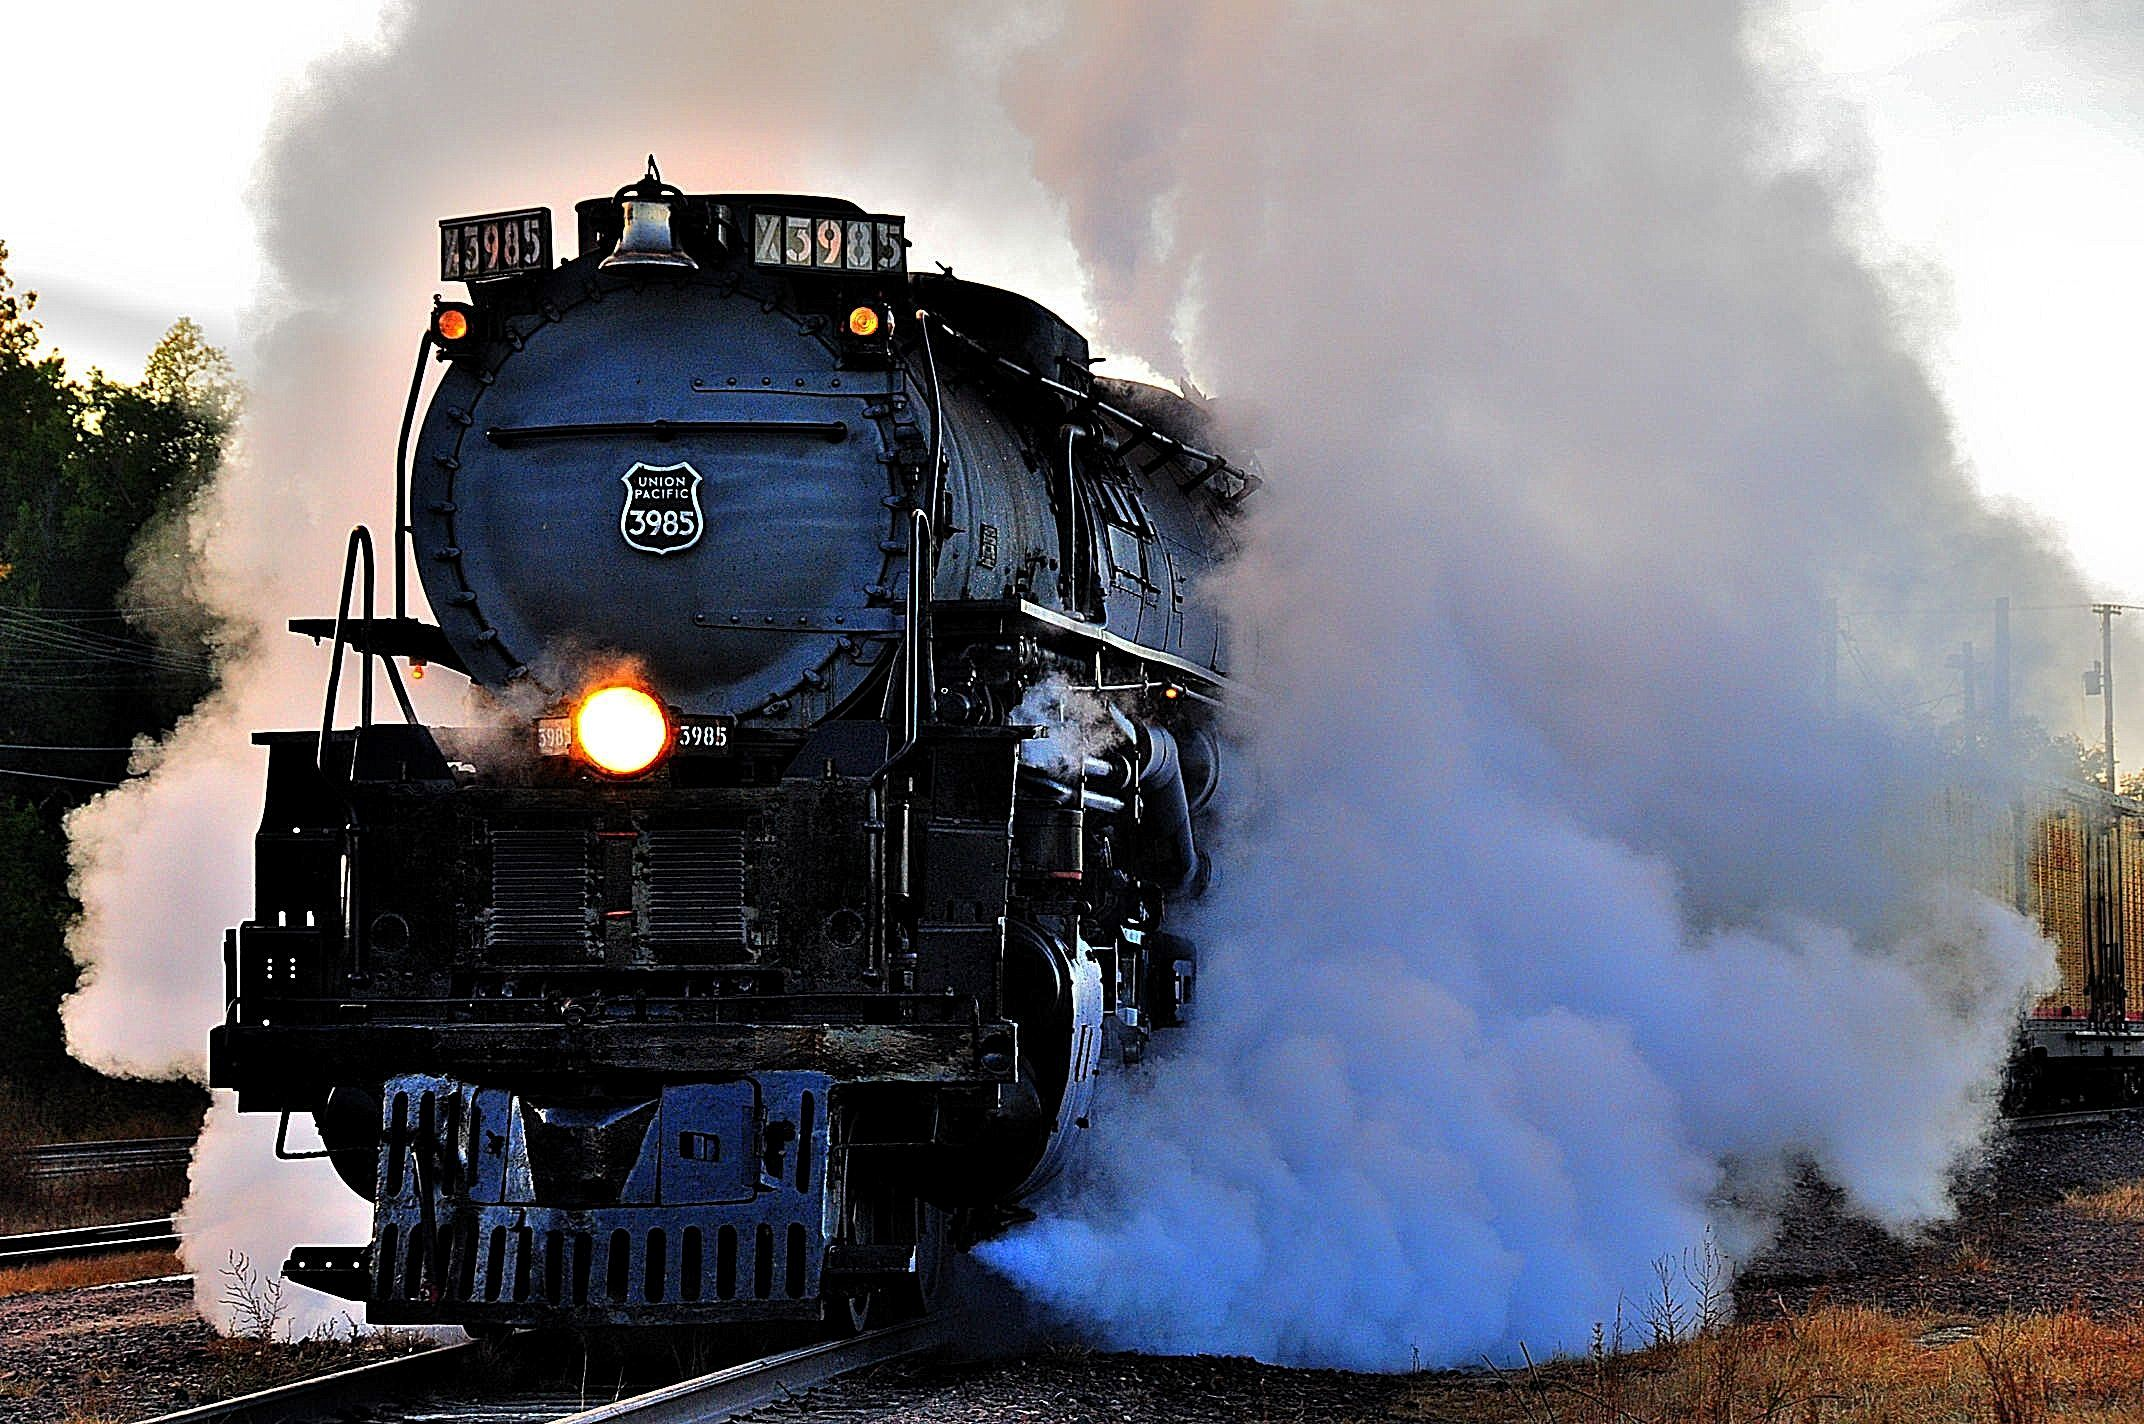 Train engine with a large cloud of smoke/steam coming from the train